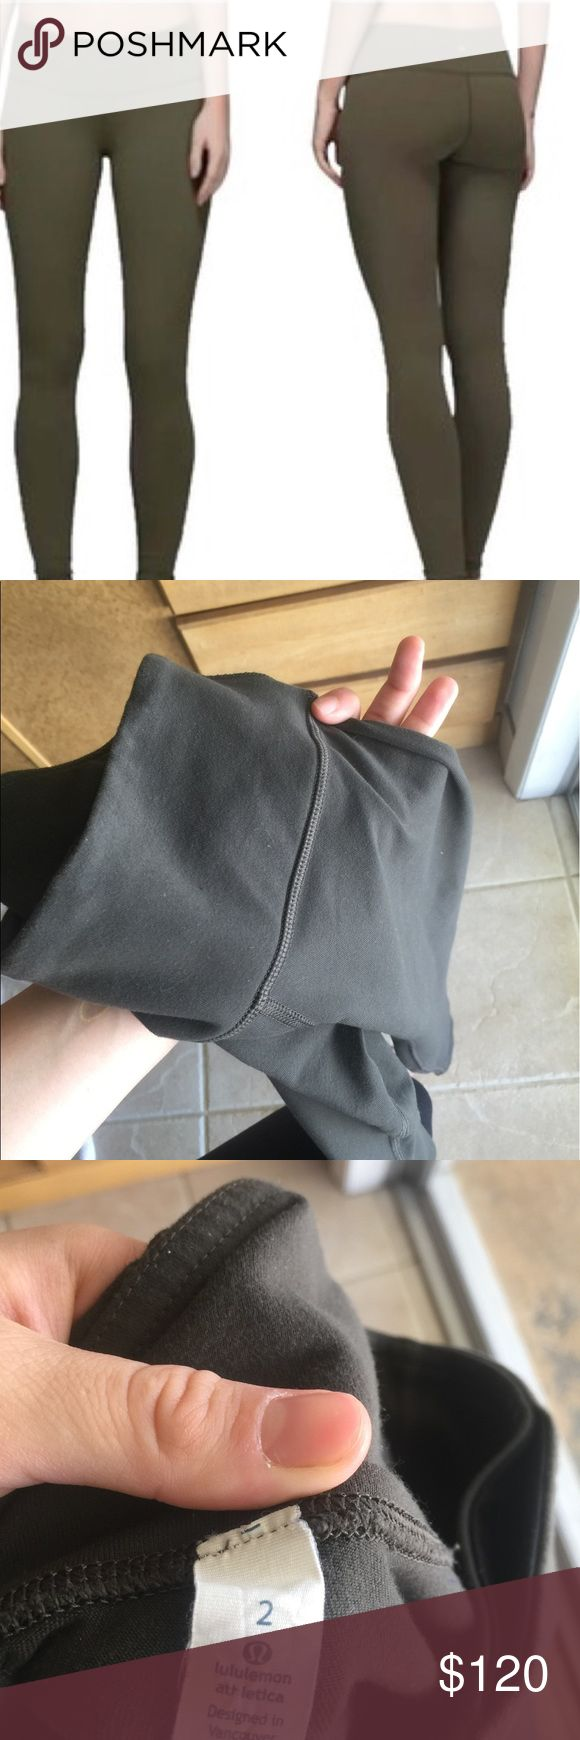 DARK OLIVE GREEN LULULEMON FULL LEGGINGS Dark OLIVE GREEN LULULEMON LEGGINGS FULL PANT medium rise and rare right now in all LULULEMON stores. Brand new worn once, bought them off of Poshmark and to small for me! lululemon athletica Other